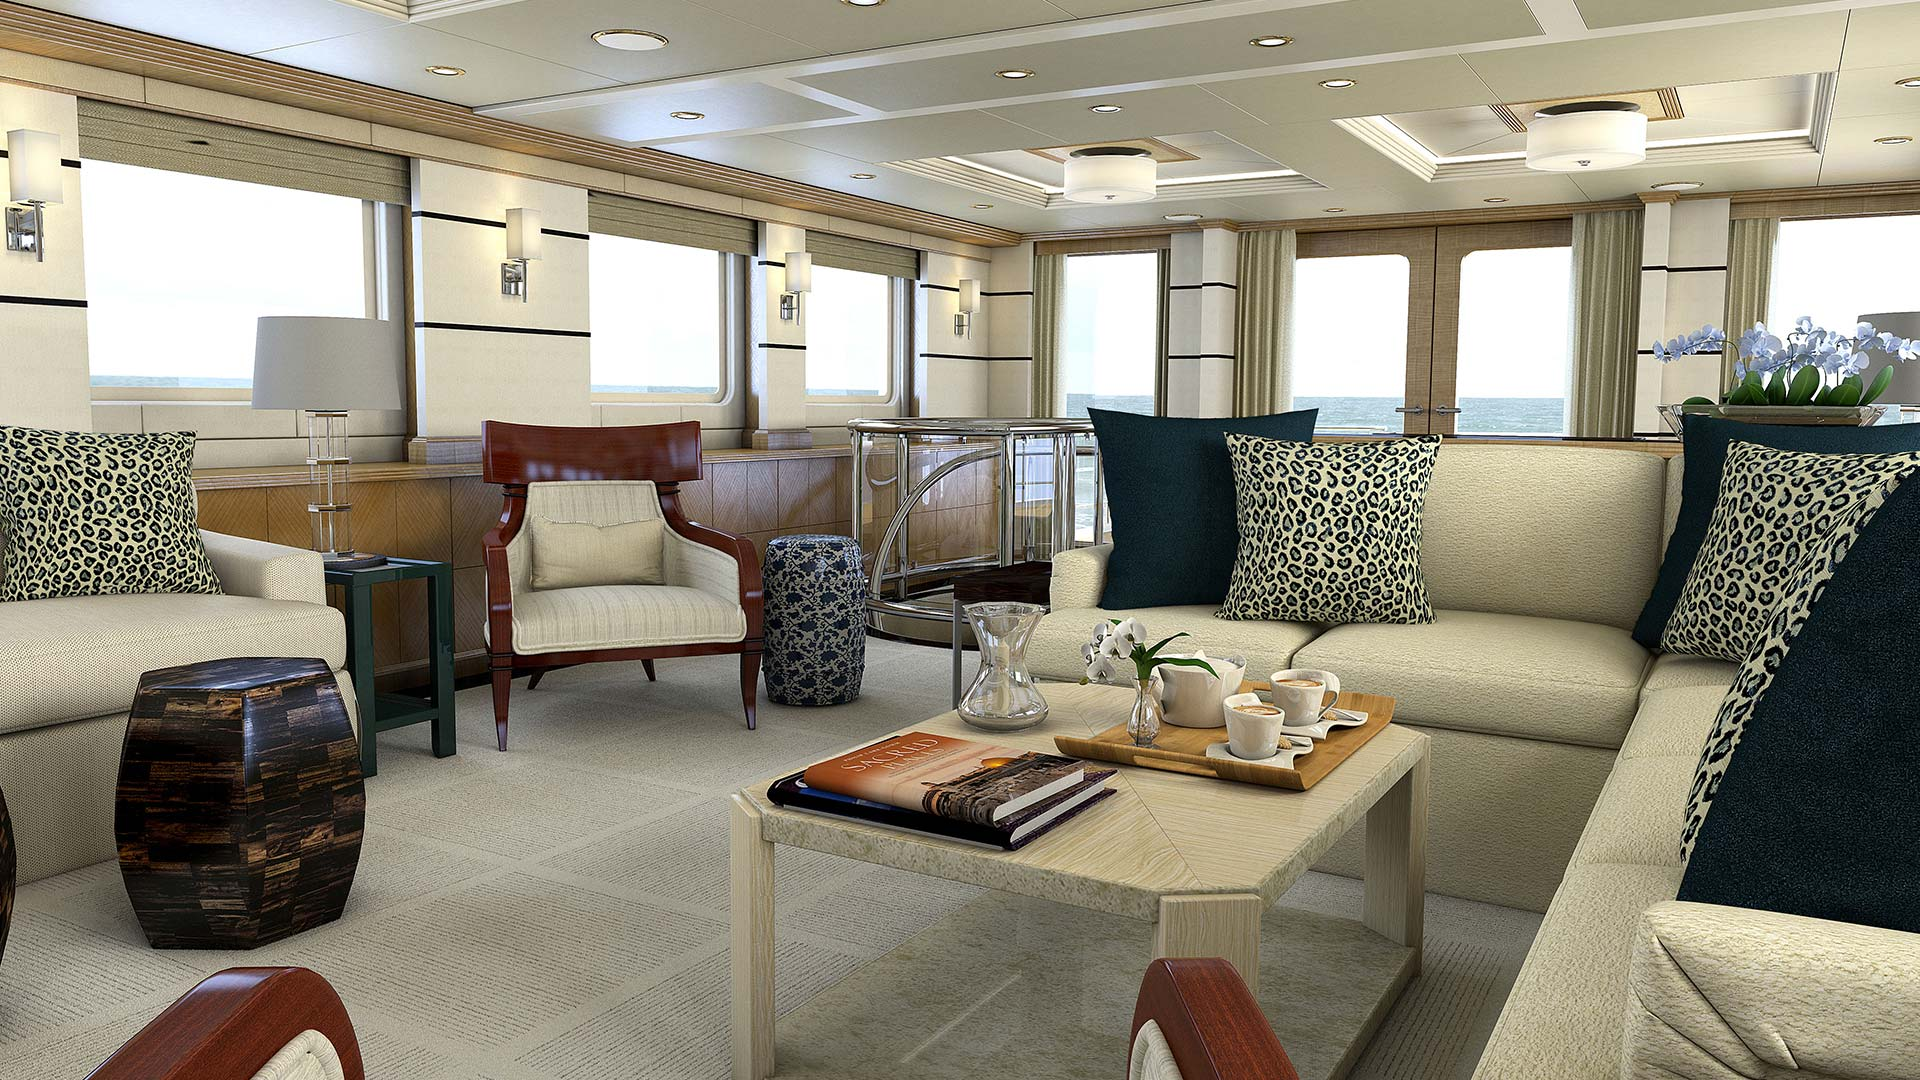 Photo of beautiful interior design of a living area in a mega yacht.